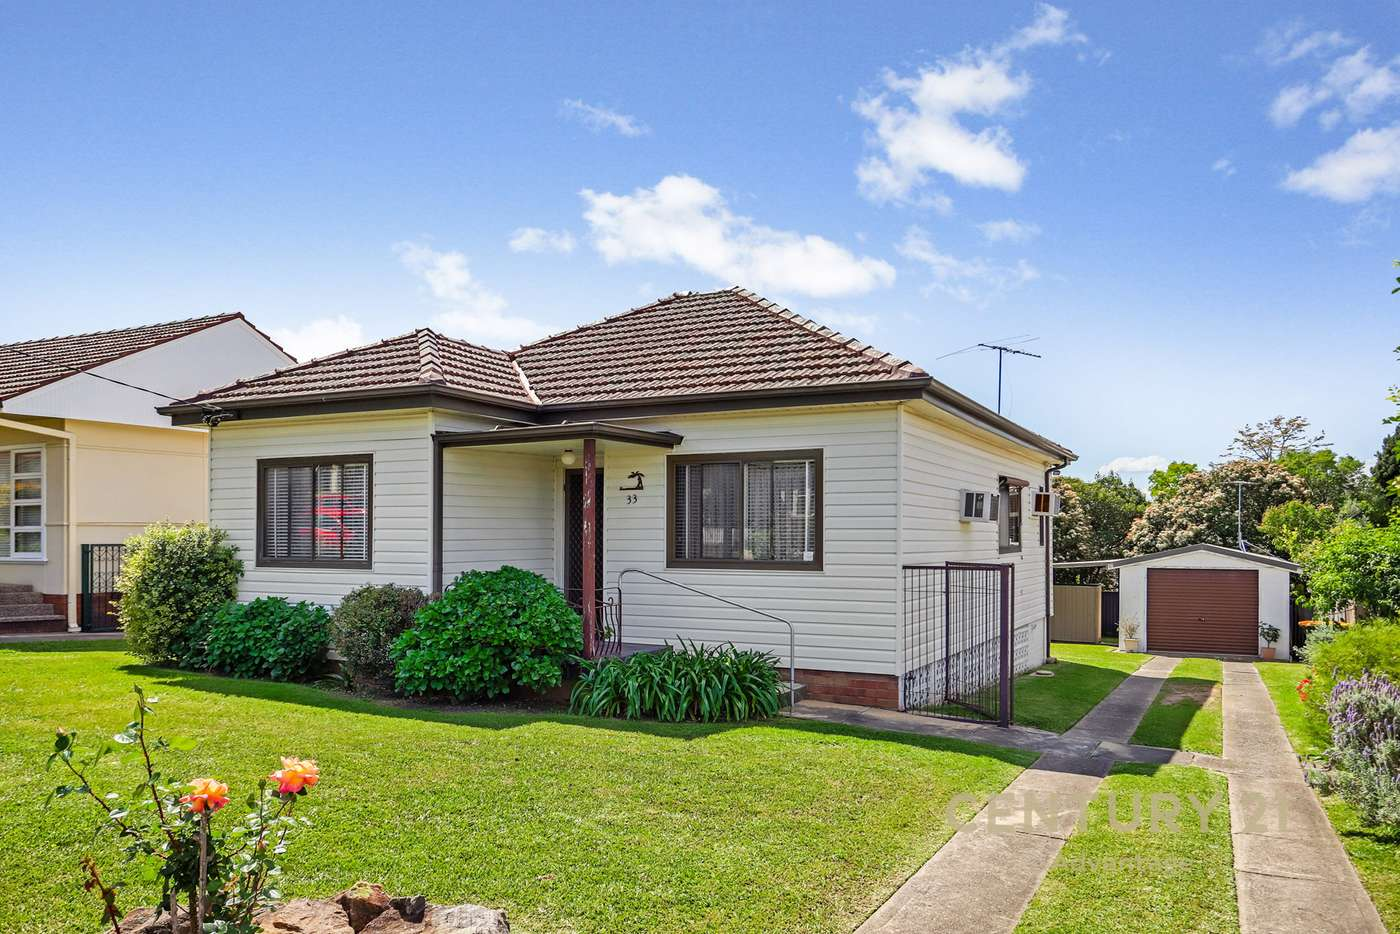 Main view of Homely house listing, 33 Craddock Street, Wentworthville NSW 2145